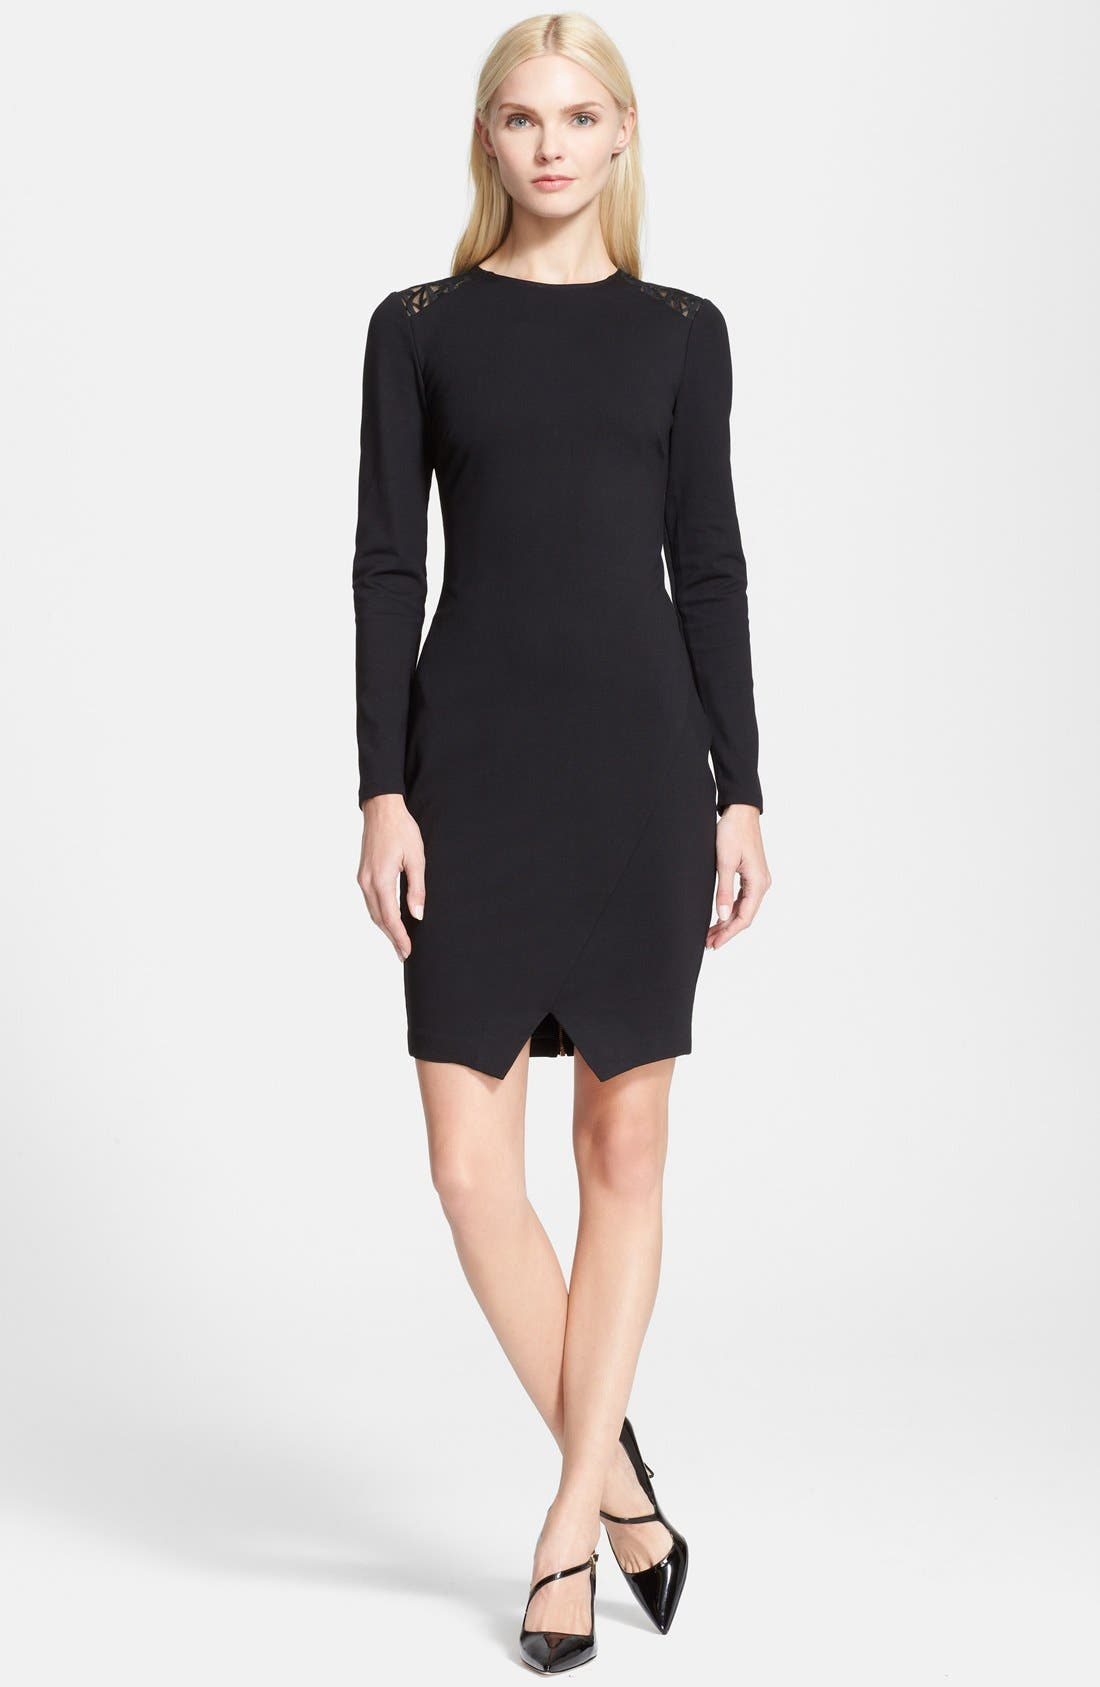 Alternate Image 1 Selected - Ted Baker London 'Mayaa' Lace Back Tulip Hem Body-Con Dress